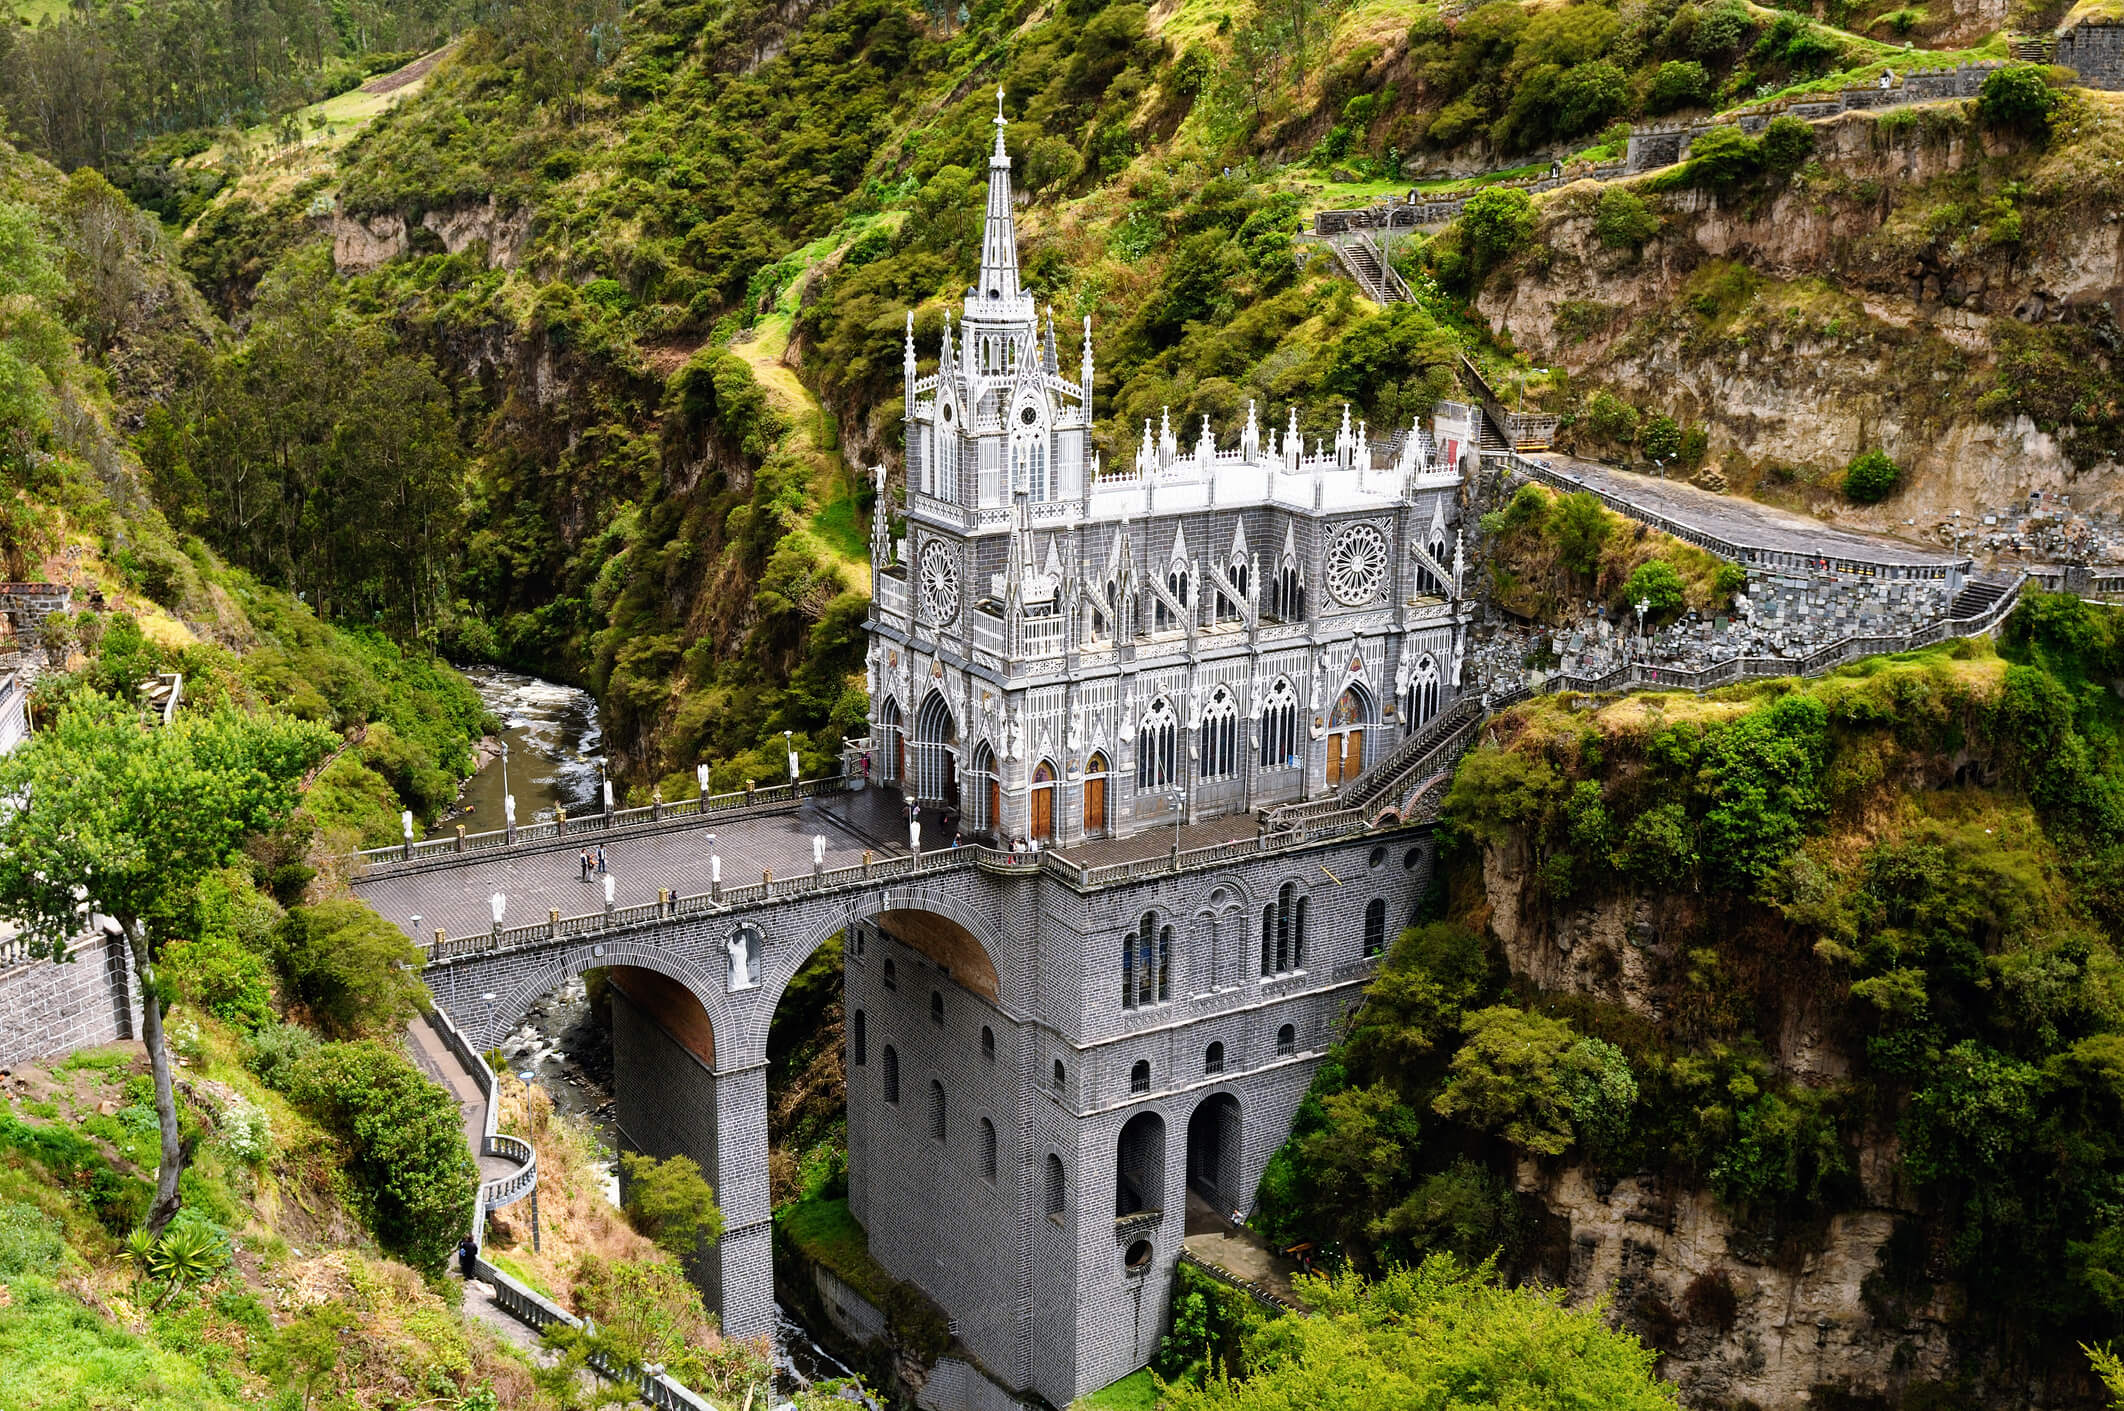 Gothic revival cathedral built into a cliffside.